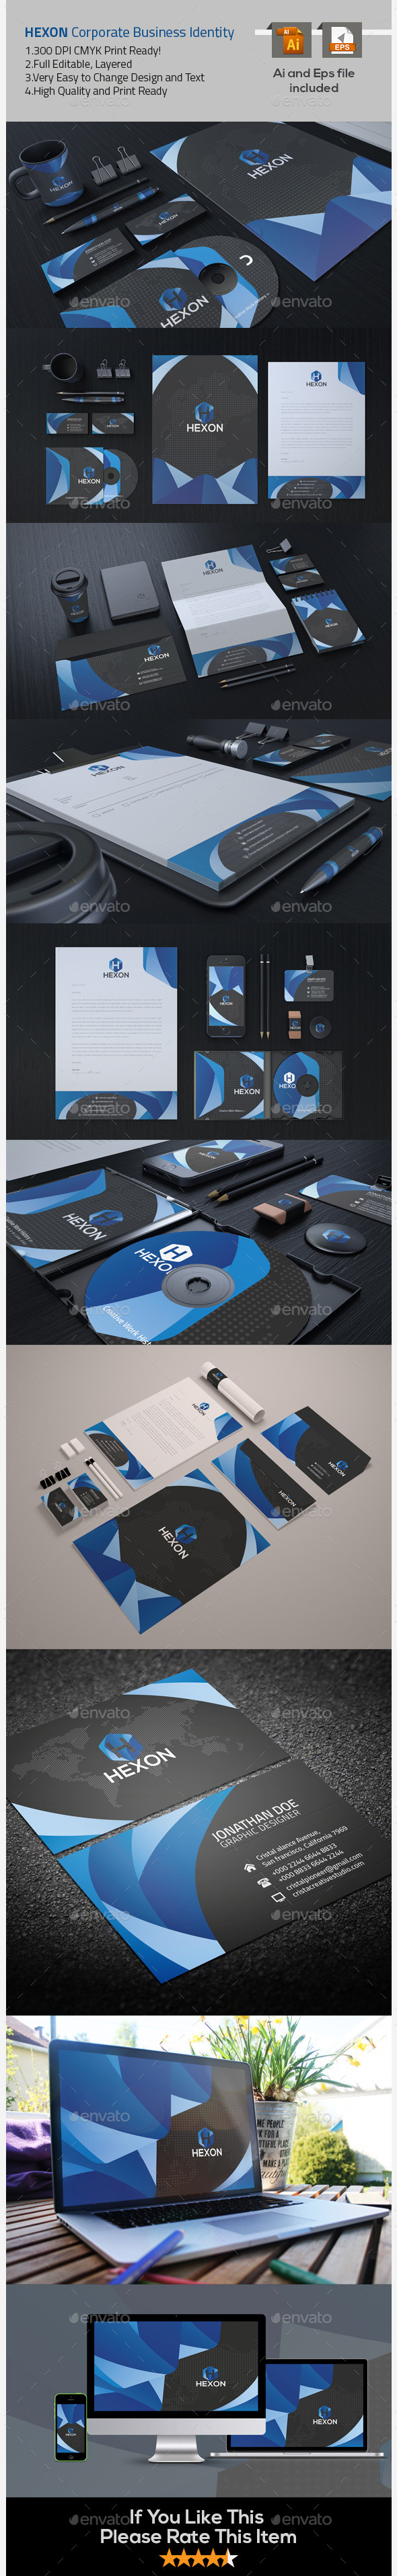 GraphicRiver Hexon Corporate Business Identity 9687741